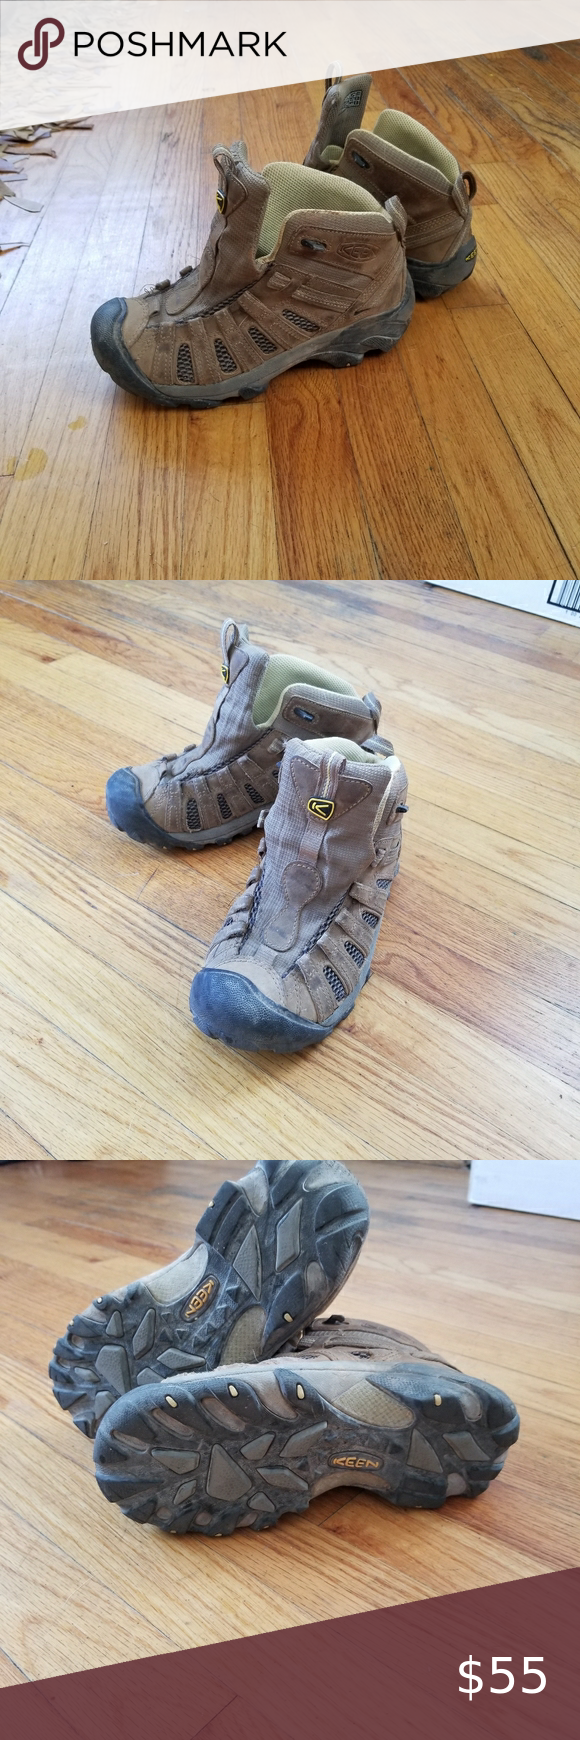 Hiking boots, Patagonia shoes, Keen shoes